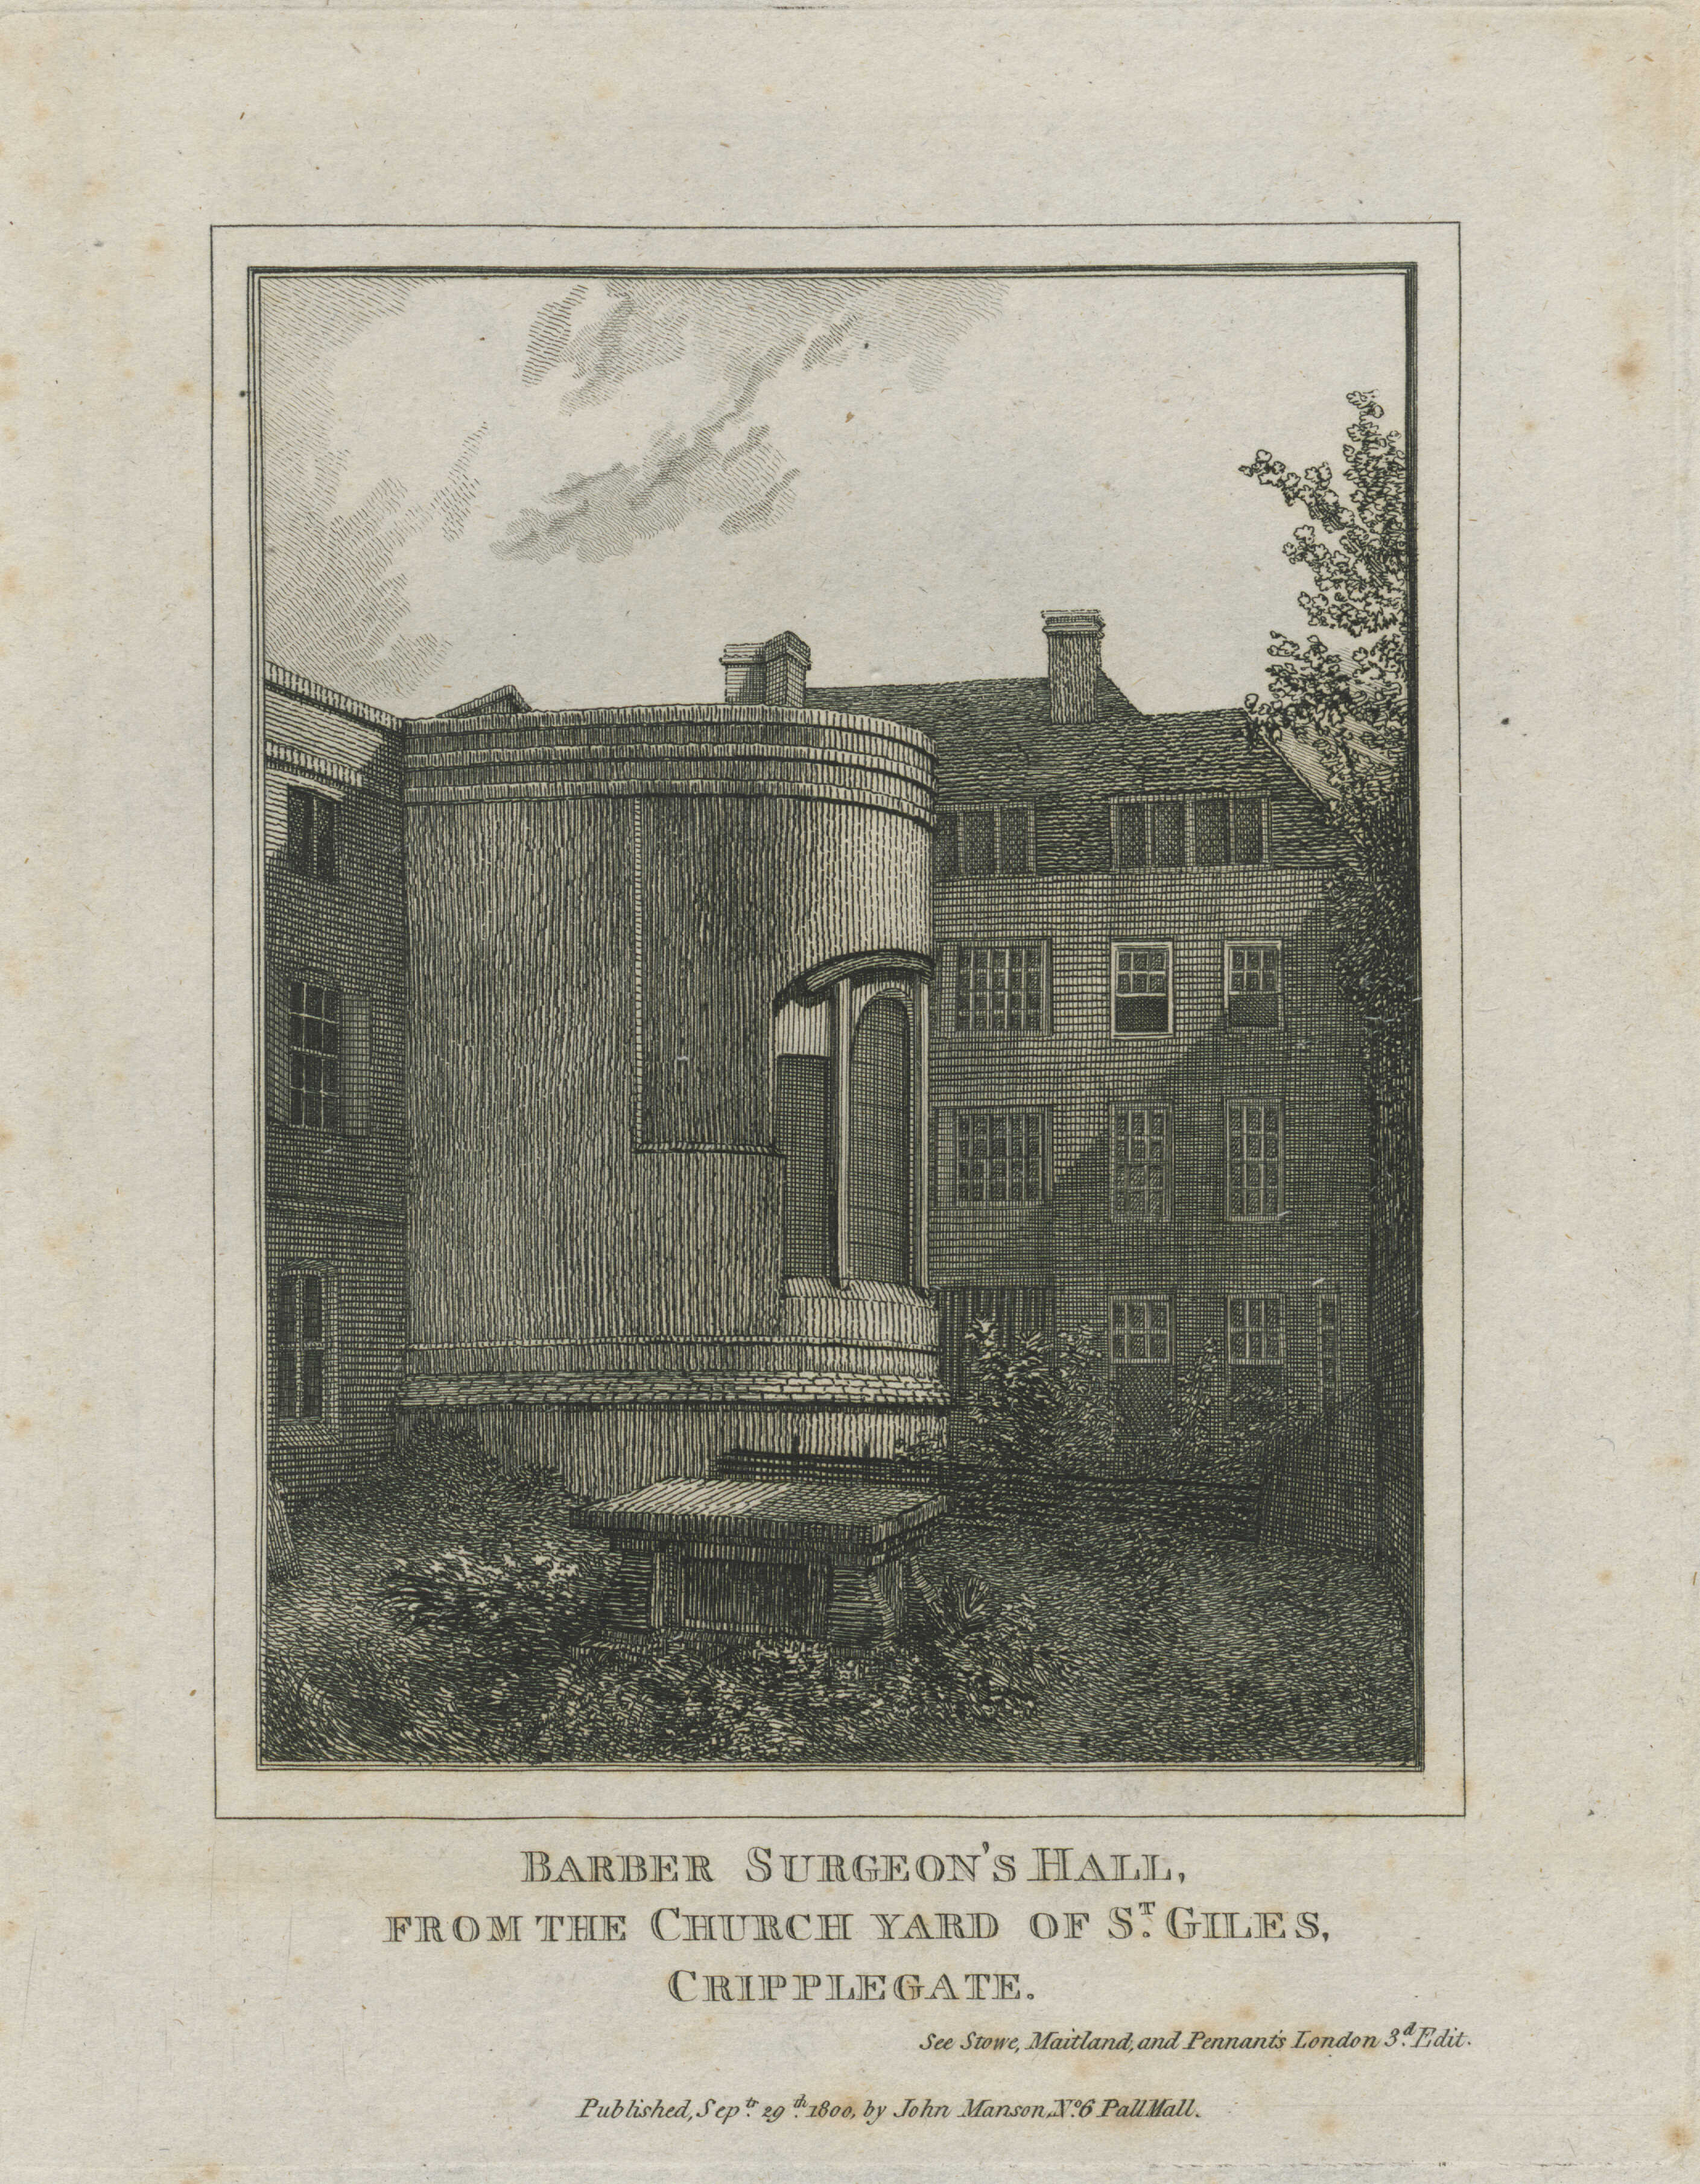 88-barber-surgeons-hall-from-the-church-yard-of-st-giles-cripplegate